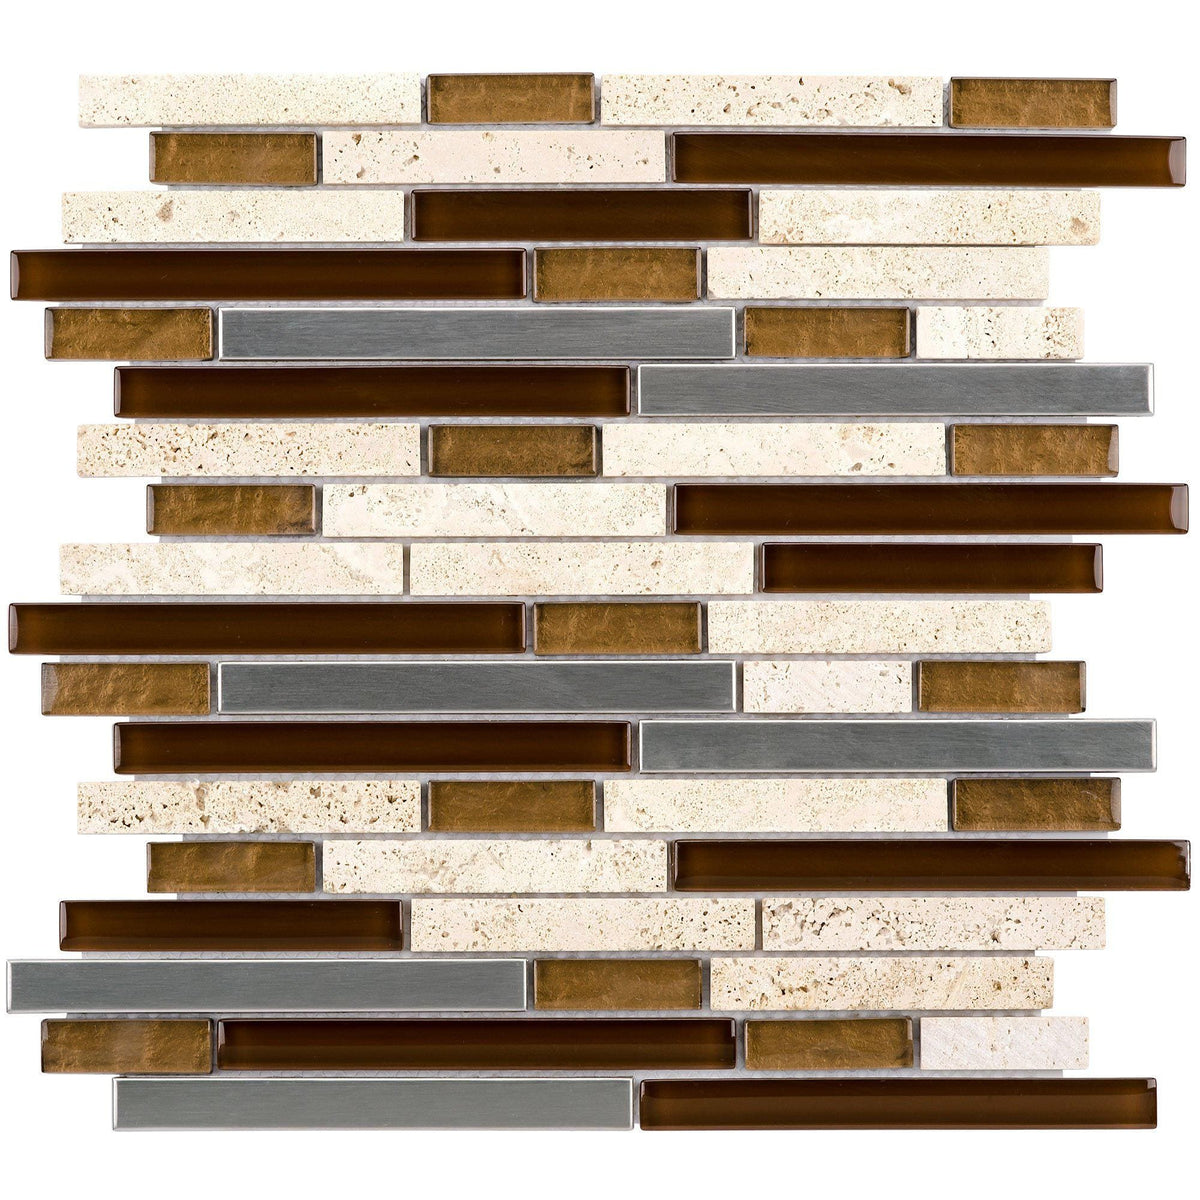 Sample Marble Green Brown Glass Linear Mosaic Tile: MTO0012 Linear Earth Tones Brown Gray Glass Travertine